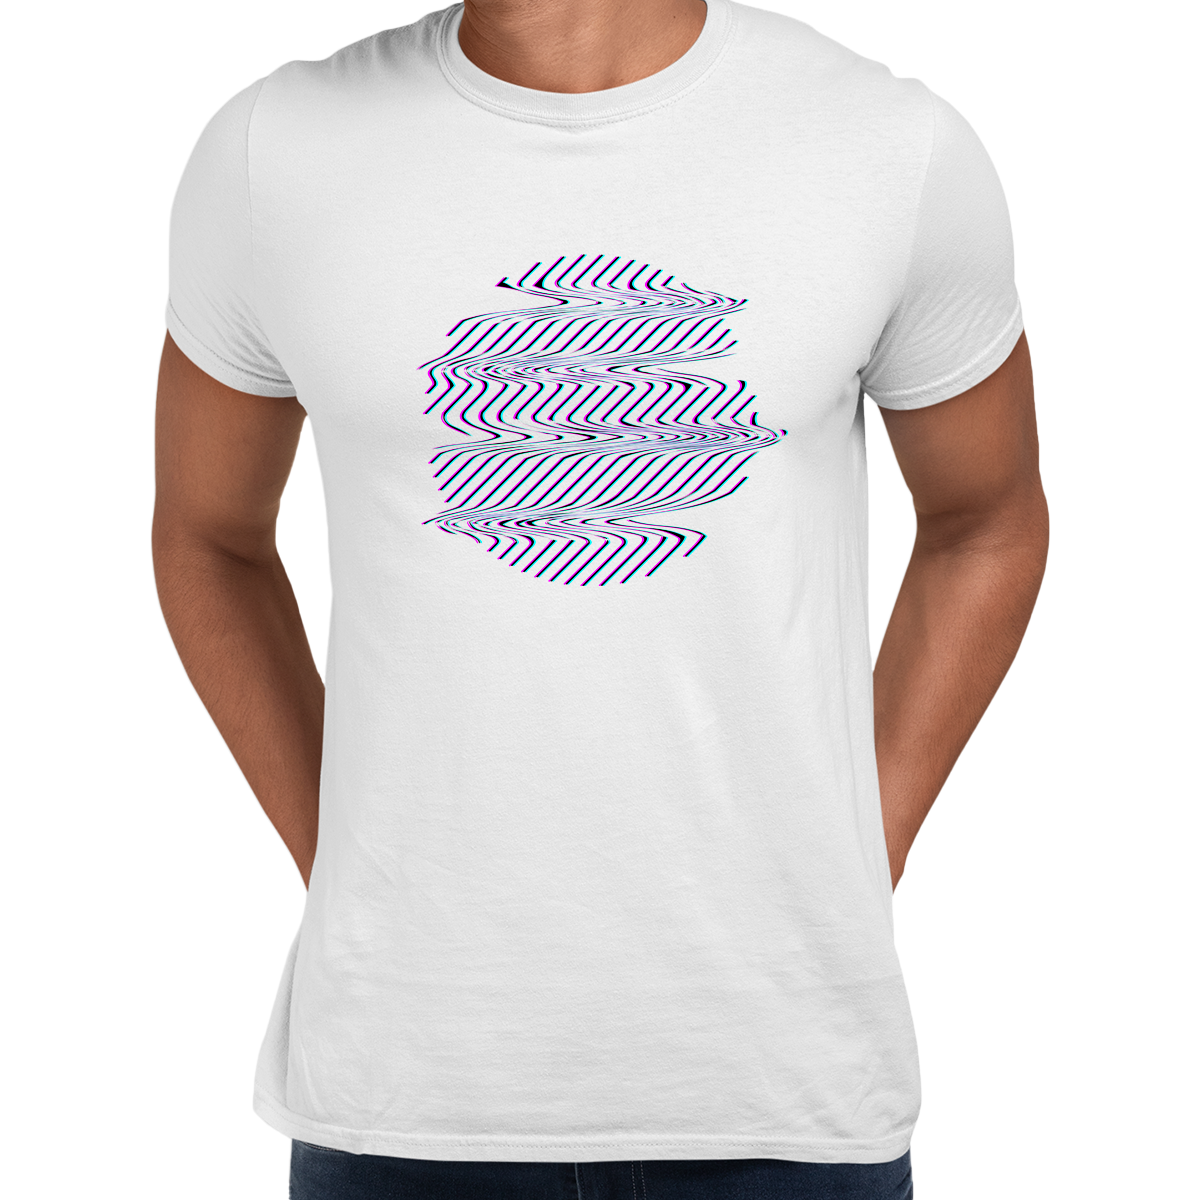 Retrofuturistic Sphere Shape with Glitch & Defect Effects Design Unisex White T-shirt